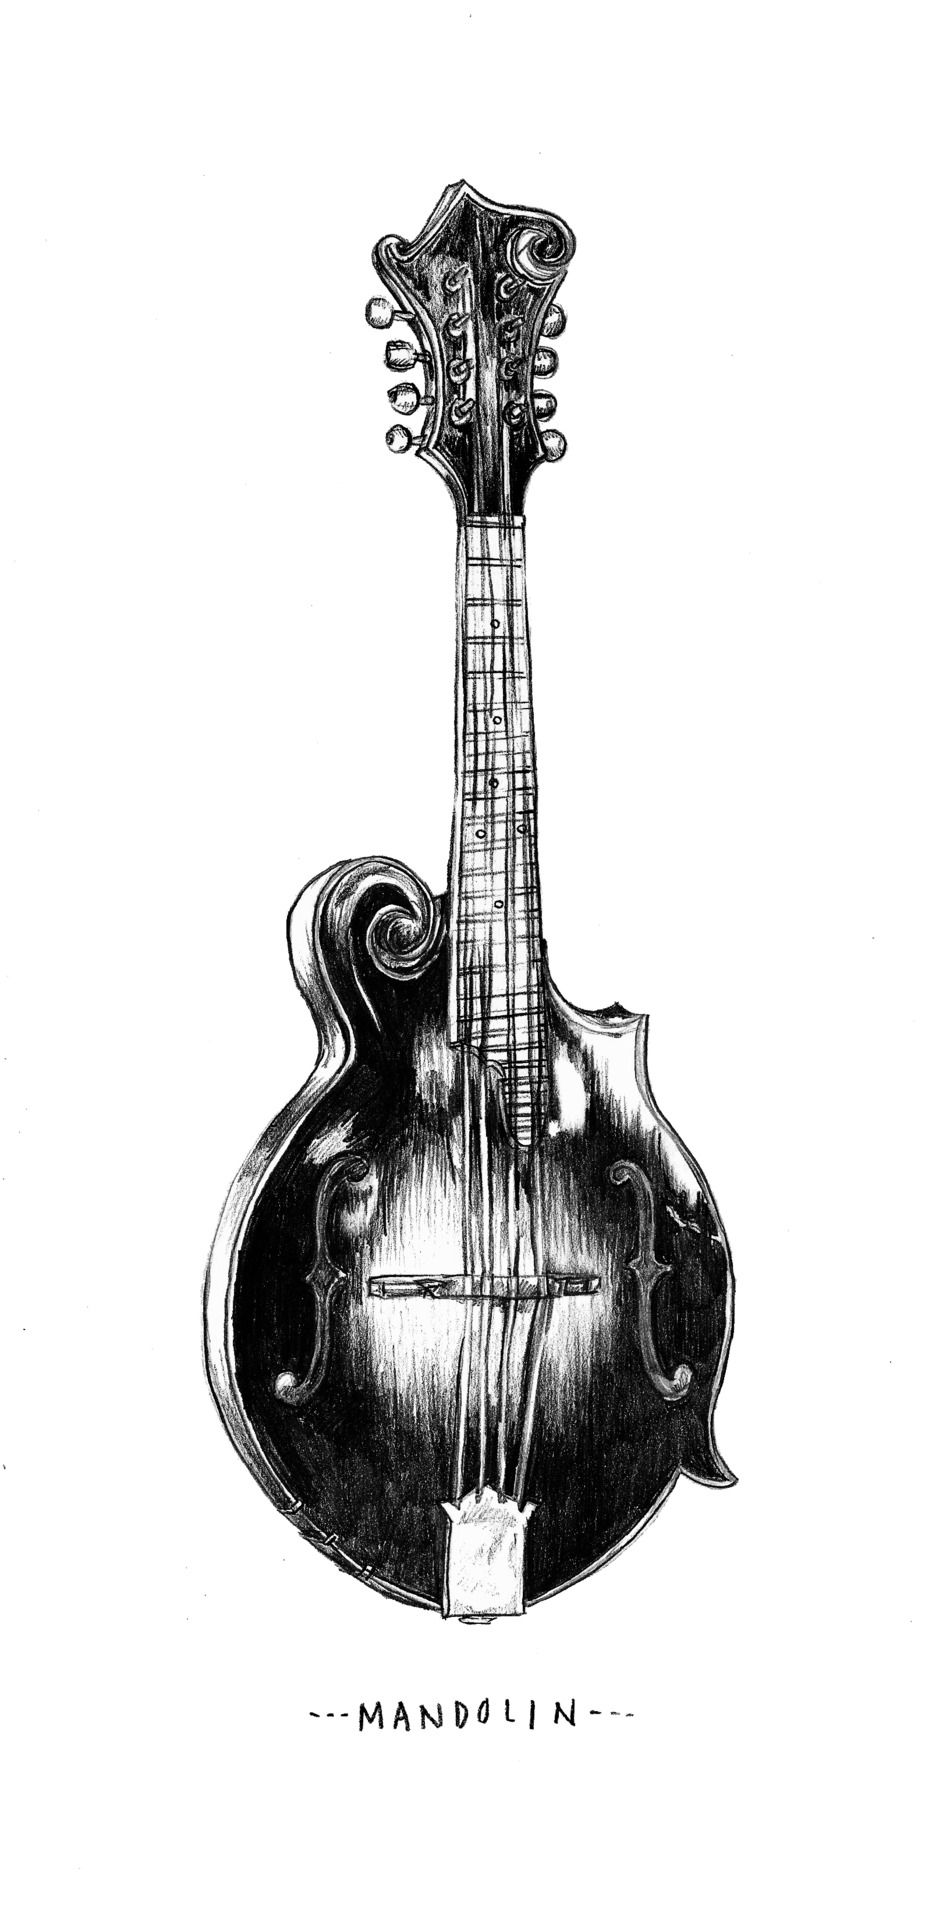 Lucyengelman Hello Real Life Howve You Been Back To Work Today Home Electrics Rare Finds Used Vintage Hofner 463 S E3 Archtop Means Drawing A Mandolin Painting Bread Ingredients And Sketching The Remaining